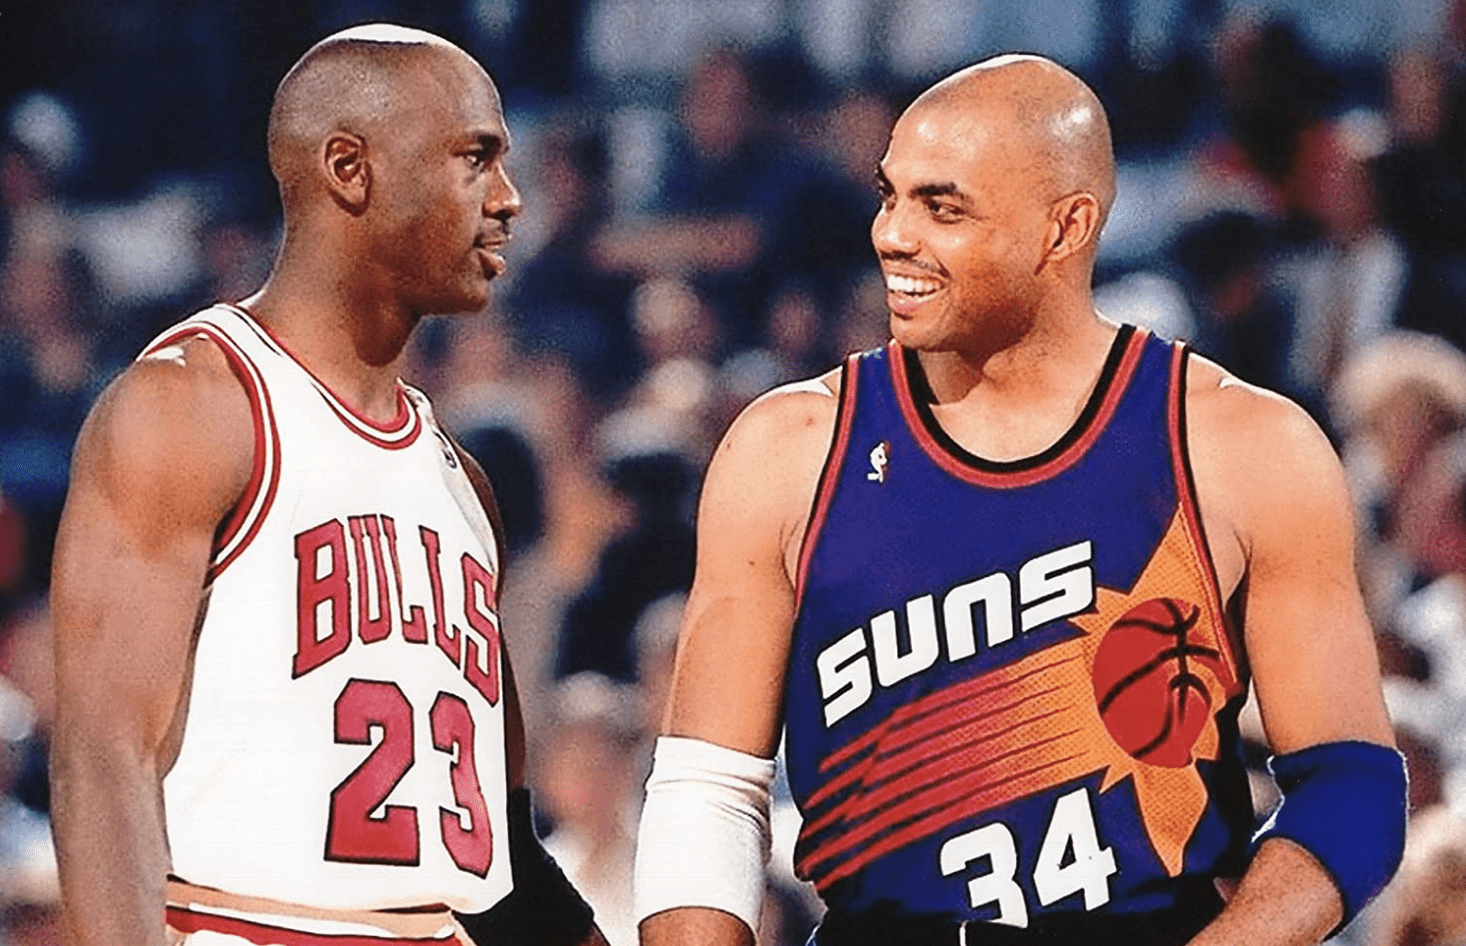 best 90s nba jerseys